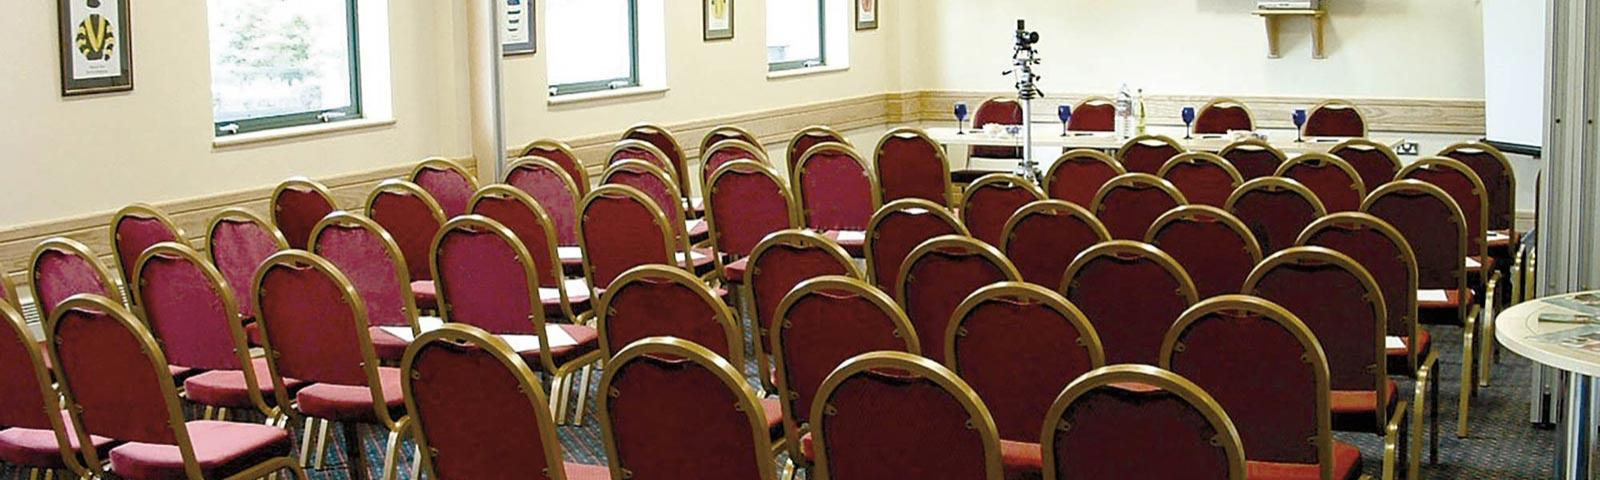 A conference room prepared awaiting the arrival of guests.